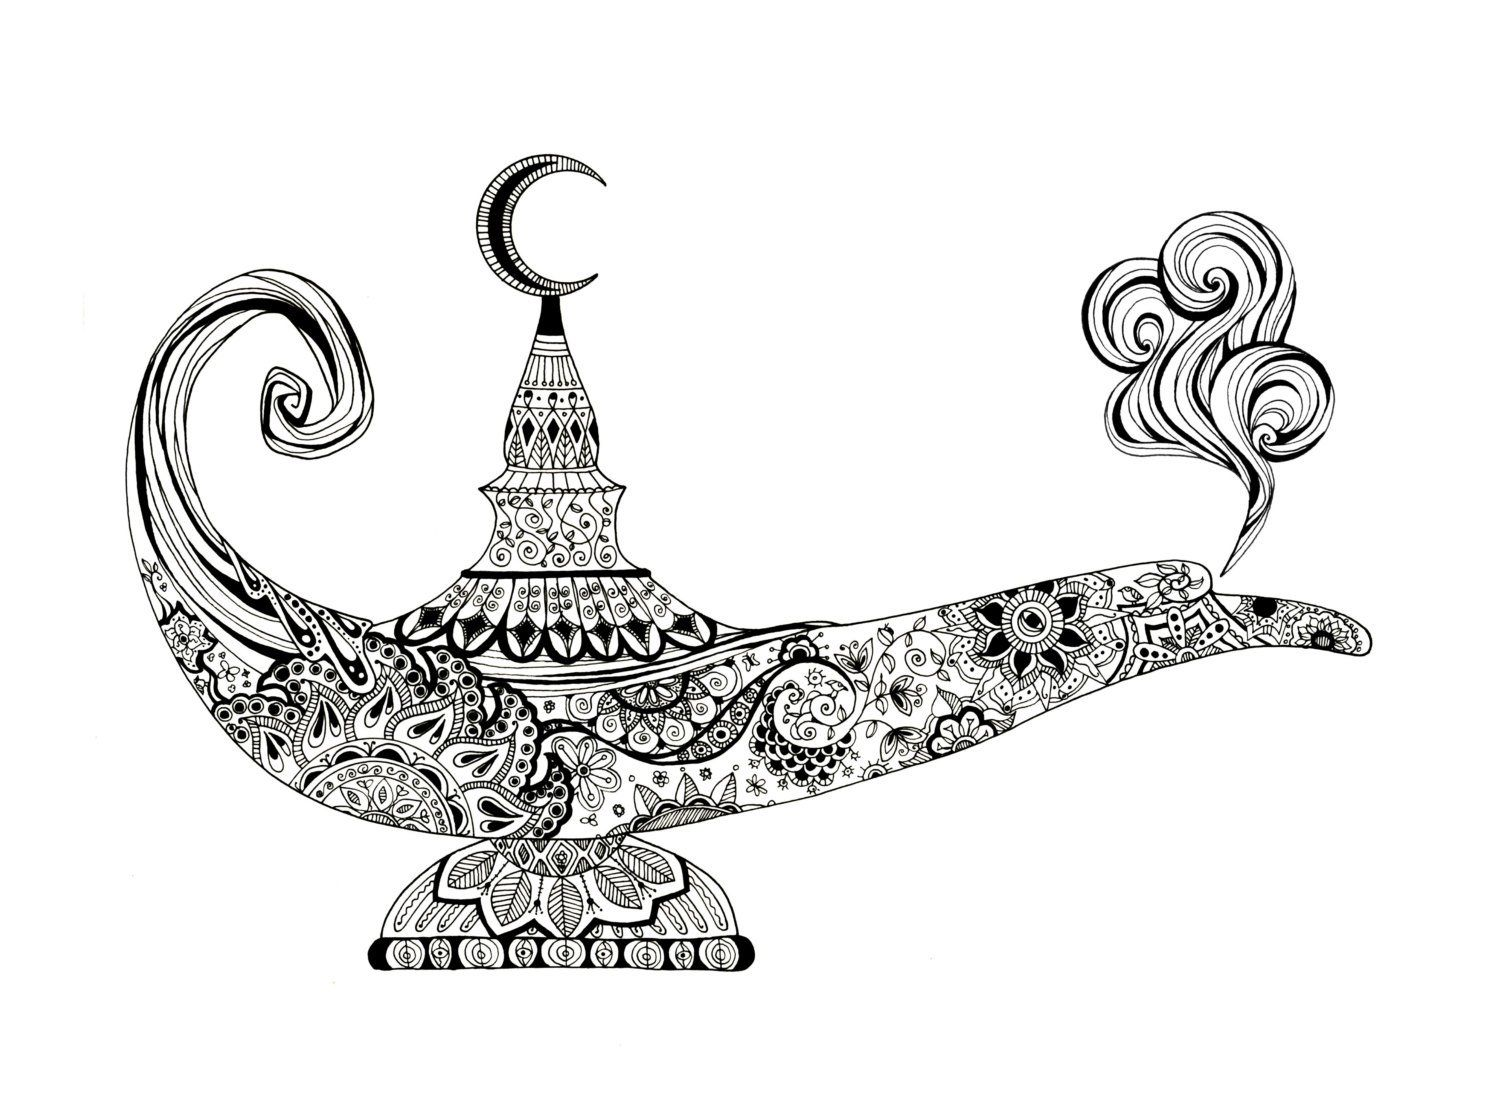 Genie lamp aladdin lamp middle eastern lamp wishing lamp